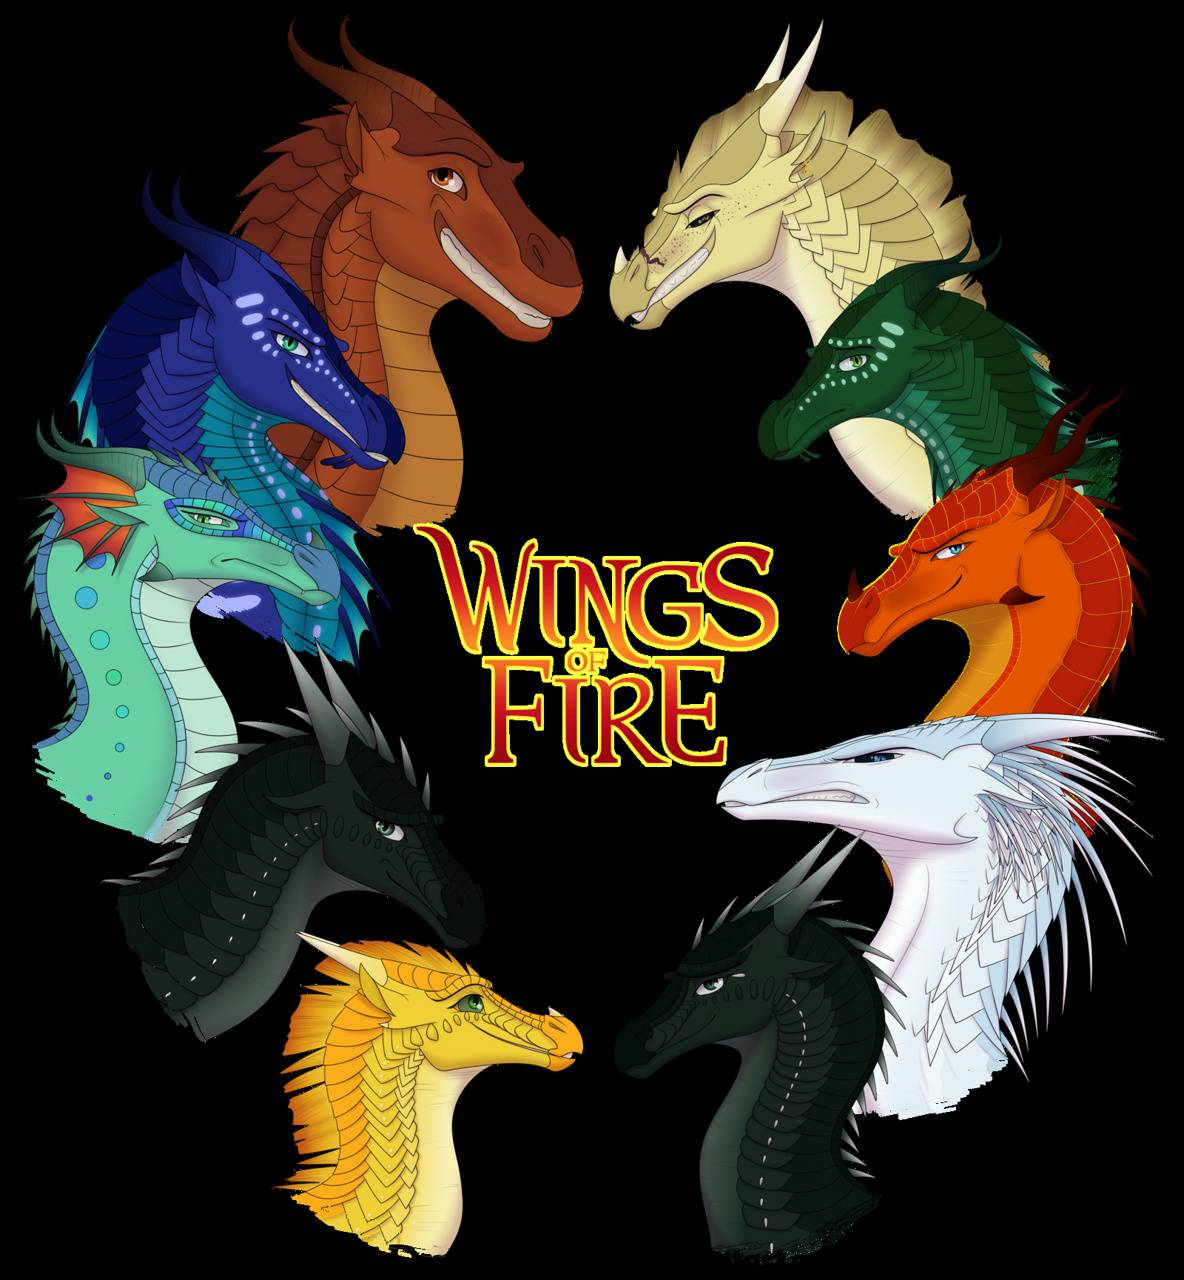 Wings of fire wallpaper by 24470008 - 5e - Free on ZEDGE™